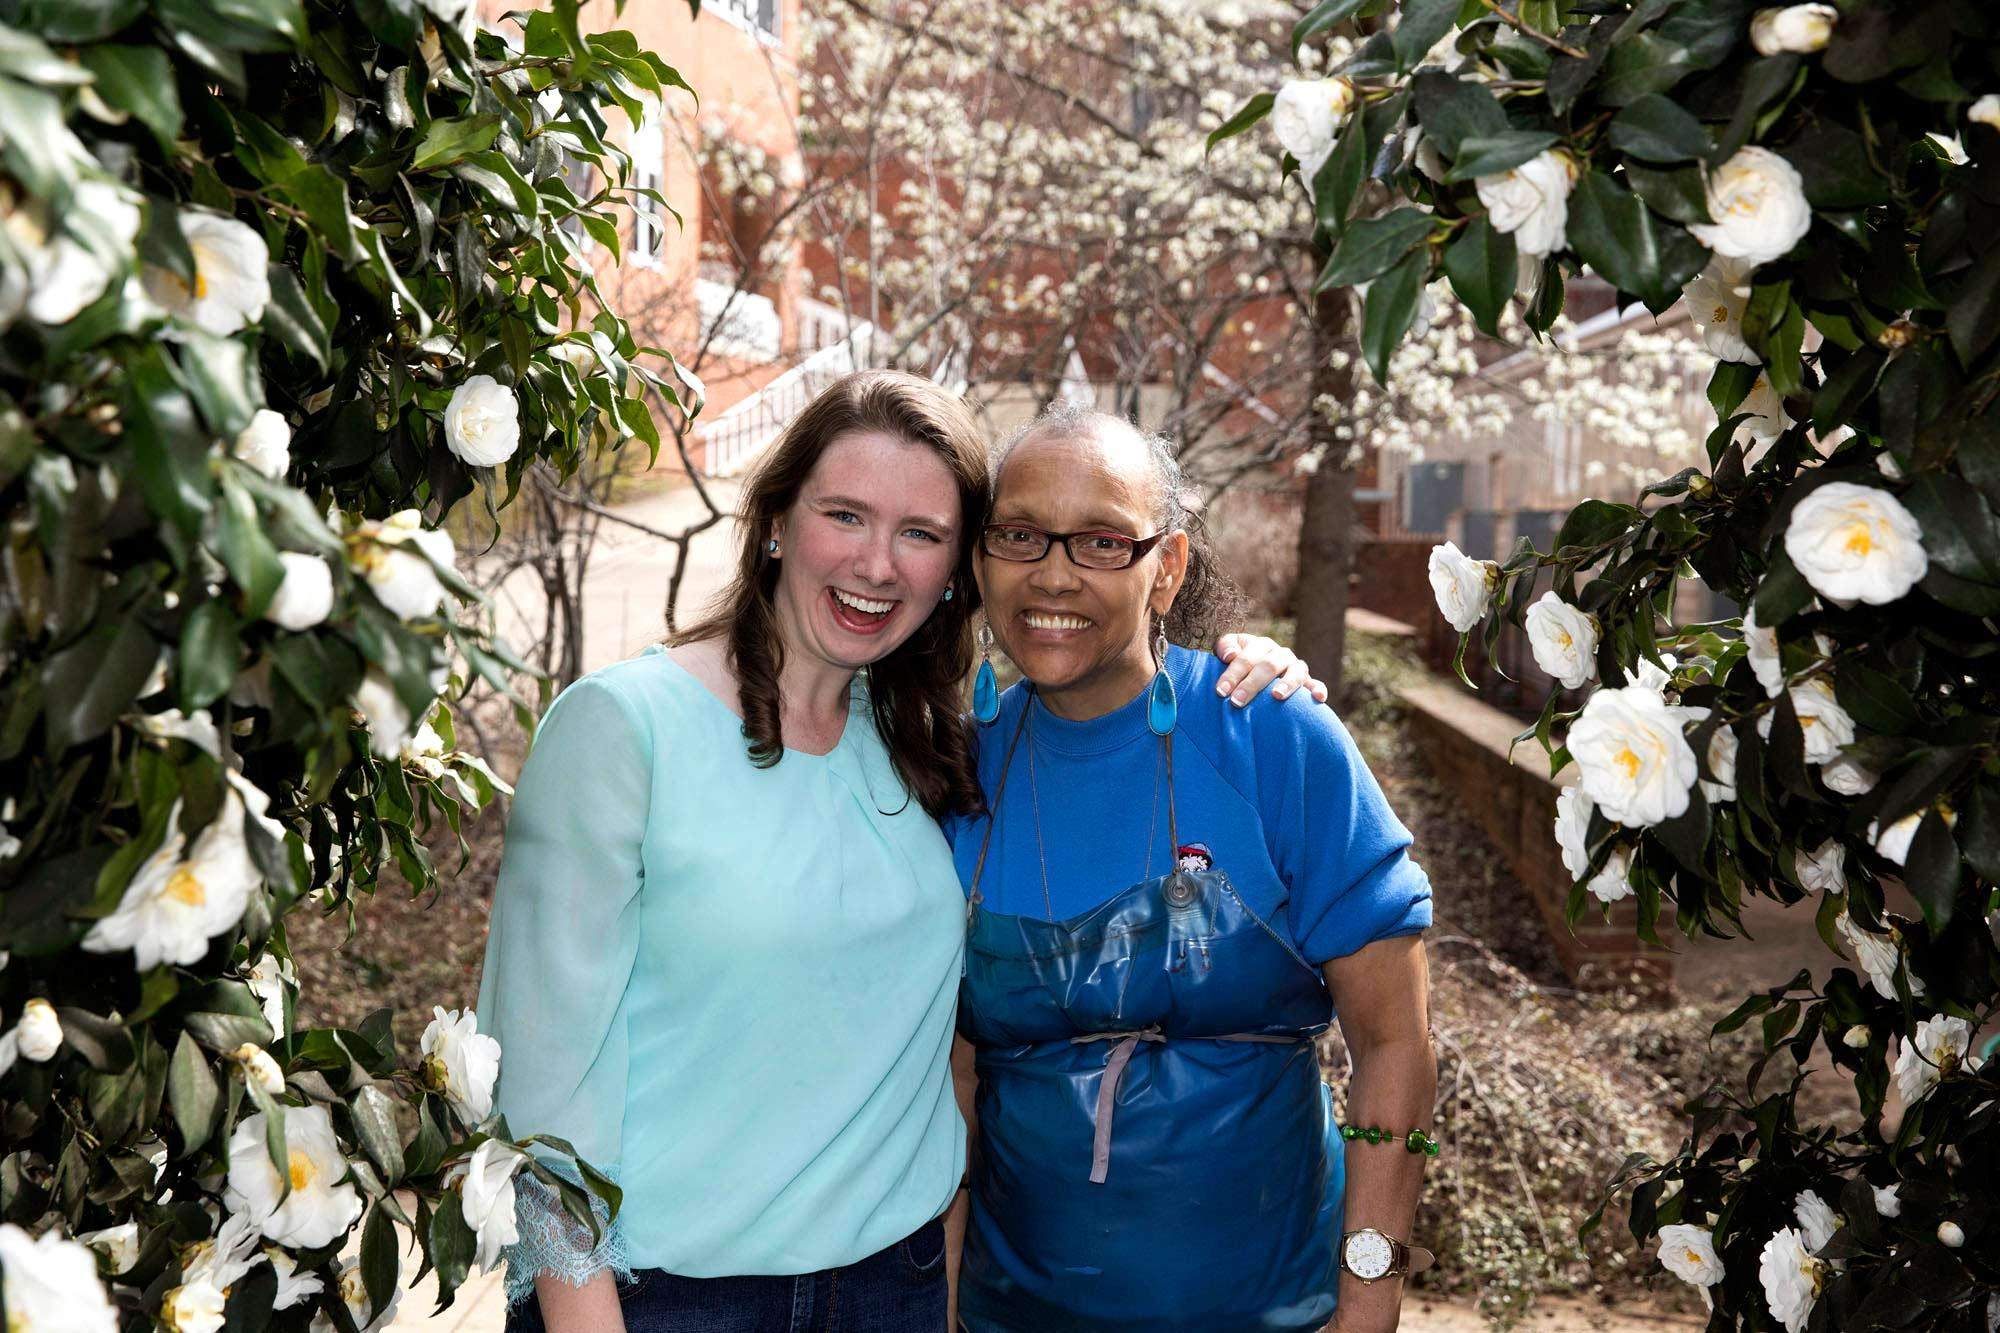 Maeve Curtin and Linda Miles are members of Best Buddies, an international nonprofit that creates opportunities for one-to-one friendships for people with intellectual and developmental disabilities. (Photo by Dan Addison, University Communications)